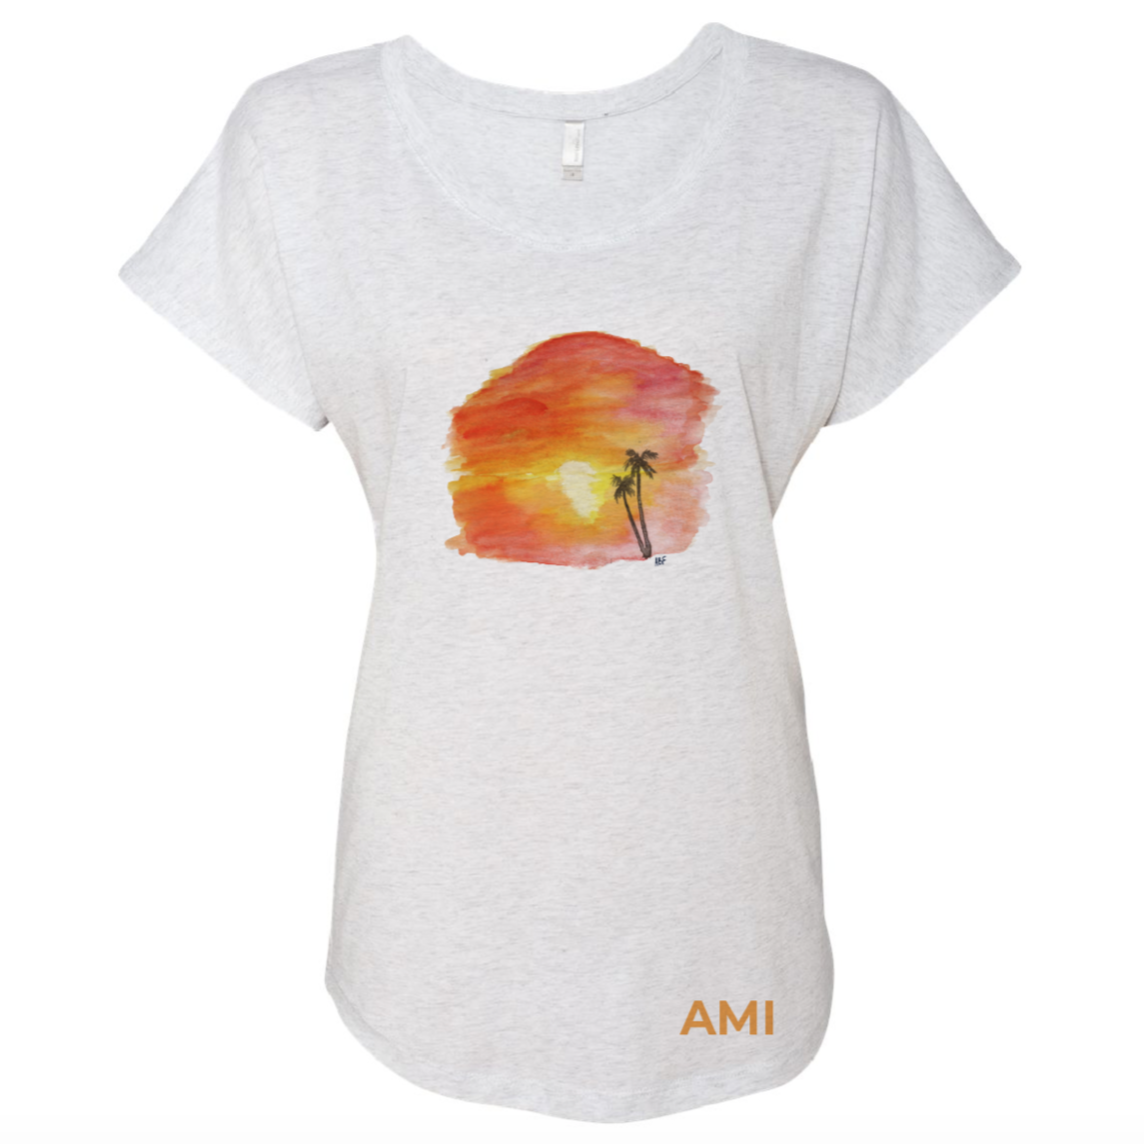 Sunset Watercolor Tee Triblend Dolman - AMI